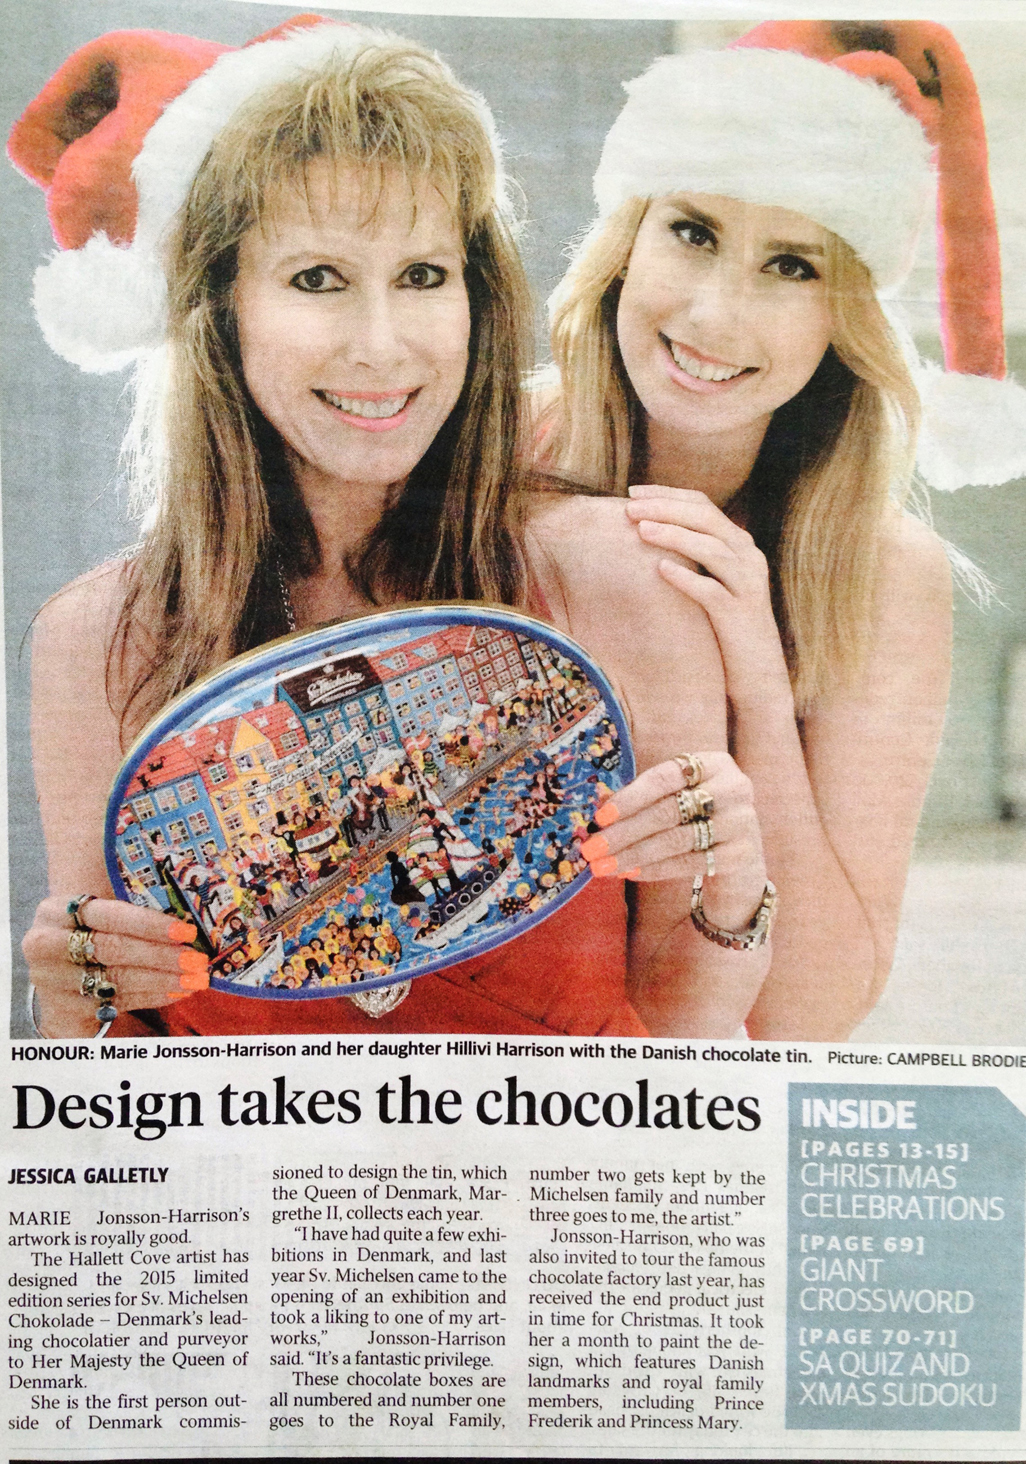 newspaper article and photo of South Australia artist Marie Jonsson-Harrison and daughter Hillivi Harrison with Sv Michelsen chocolate box from Denmark